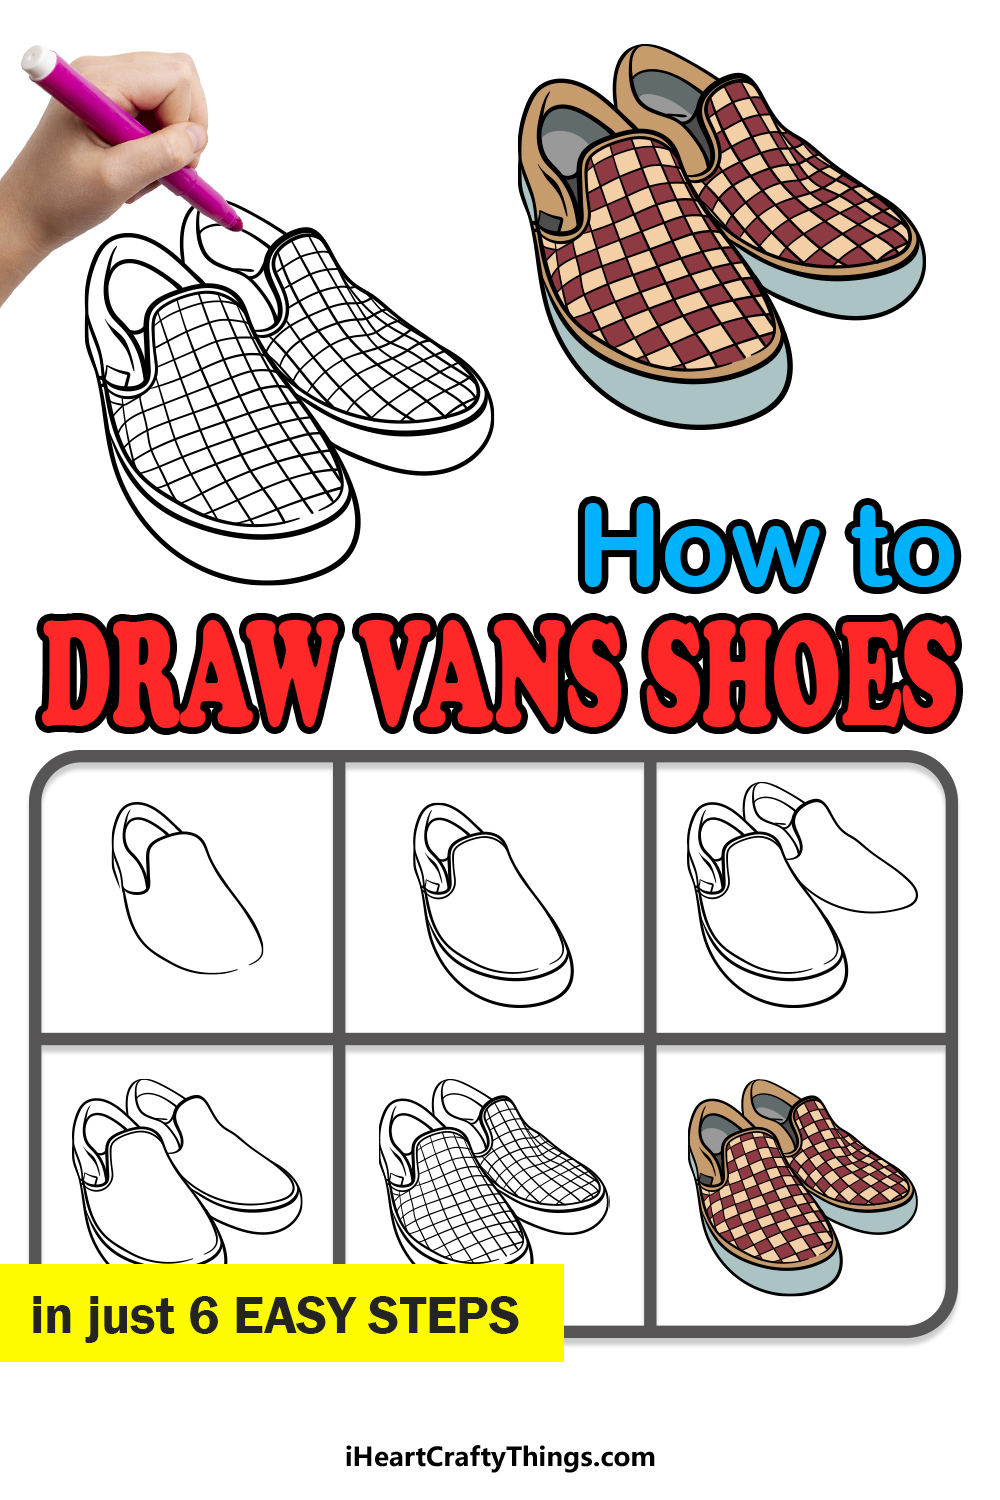 how to draw vans shoes in 6 easy steps